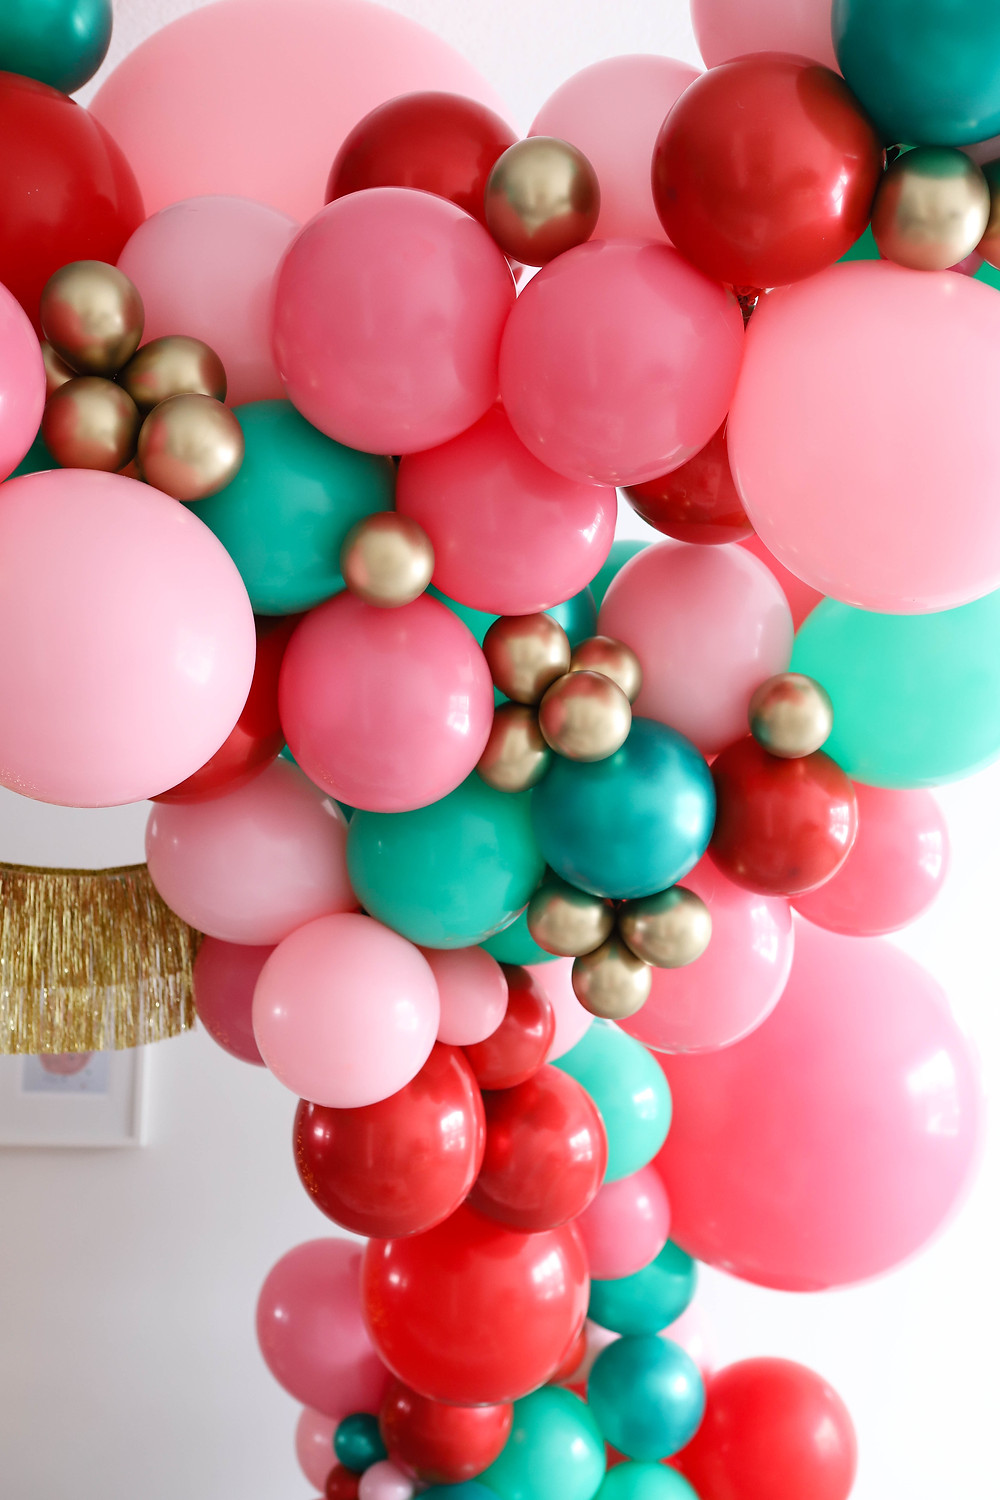 A holiday ballon garland set up at a kids christmas party in mint, pink and red colors with gold fringe accents.